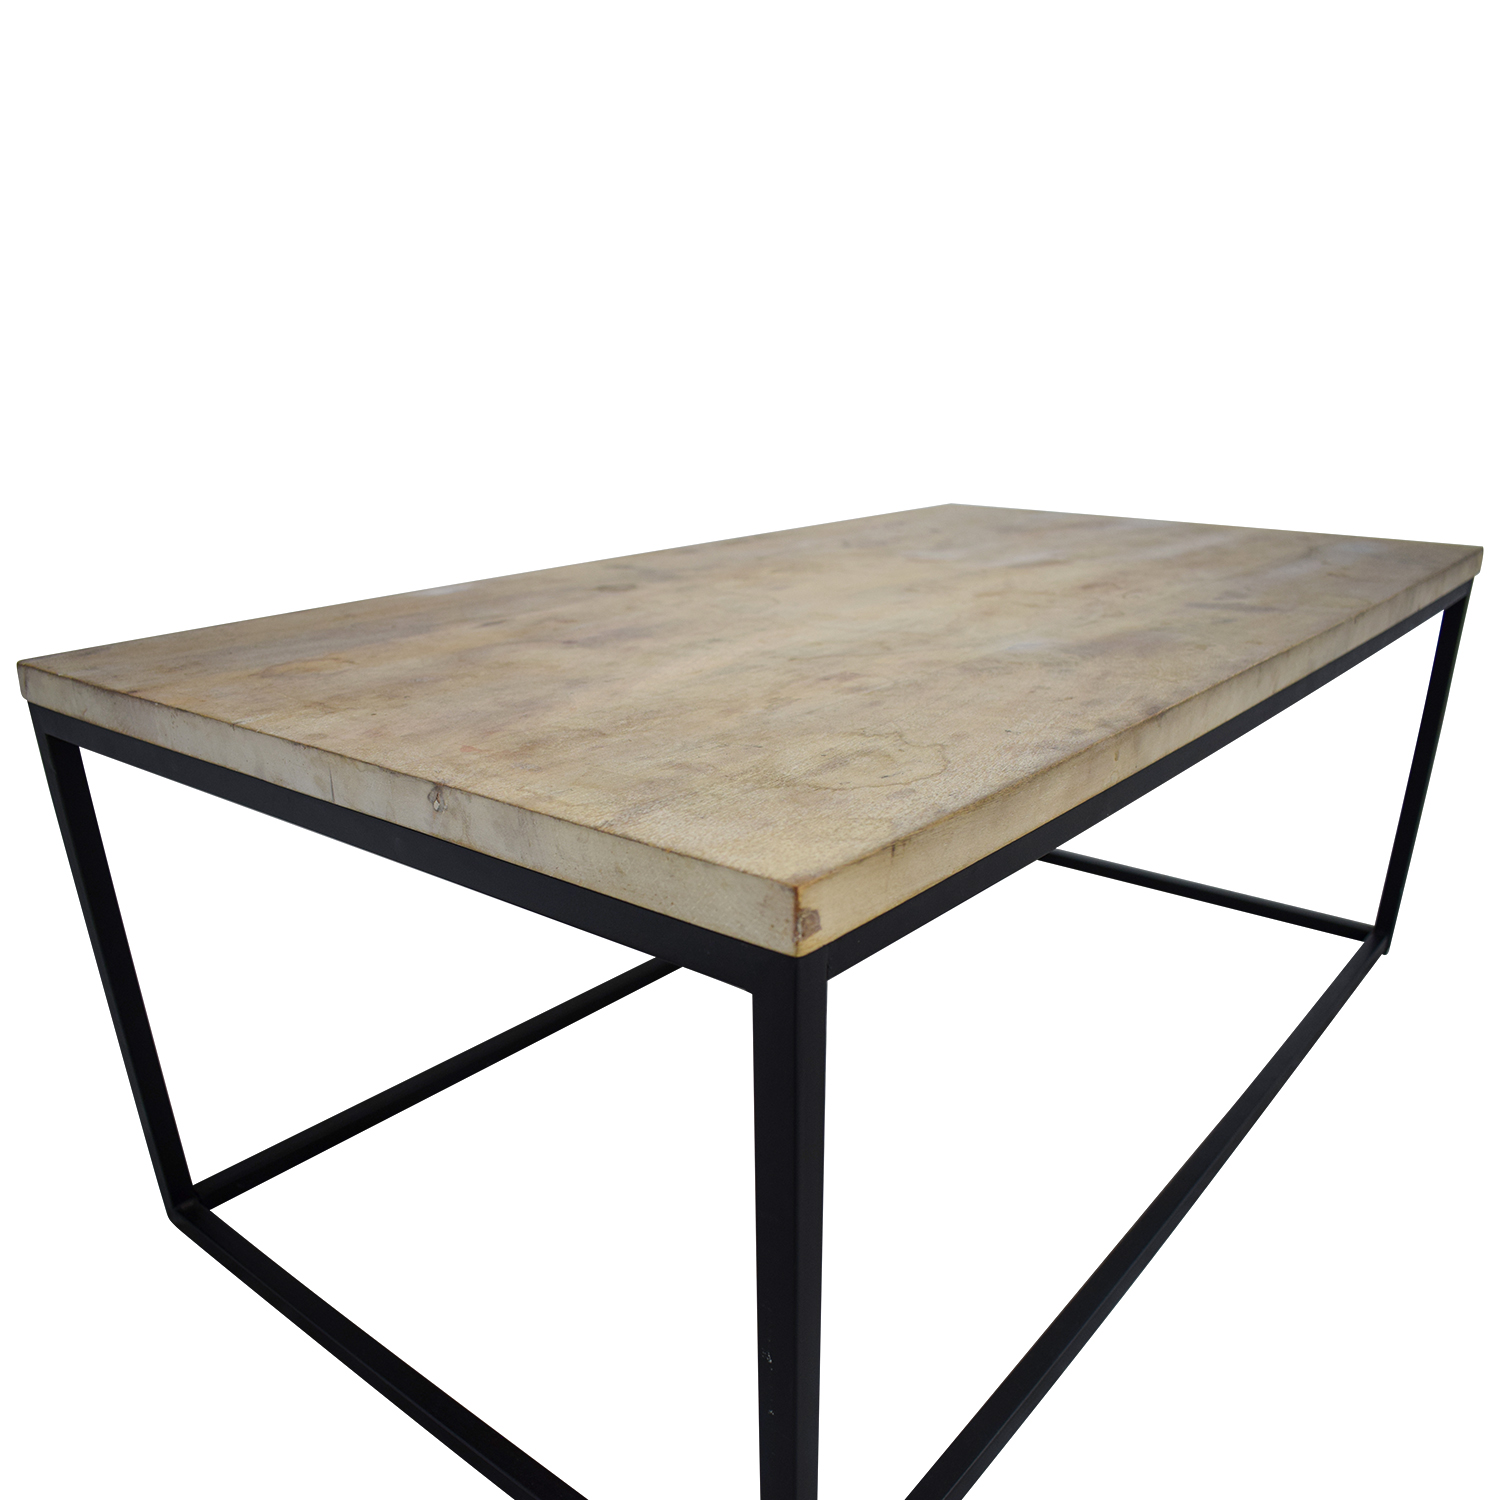 OFF West Elm West Elm Box Frame Wooden Coffee Table Tables - West elm coffee table sale